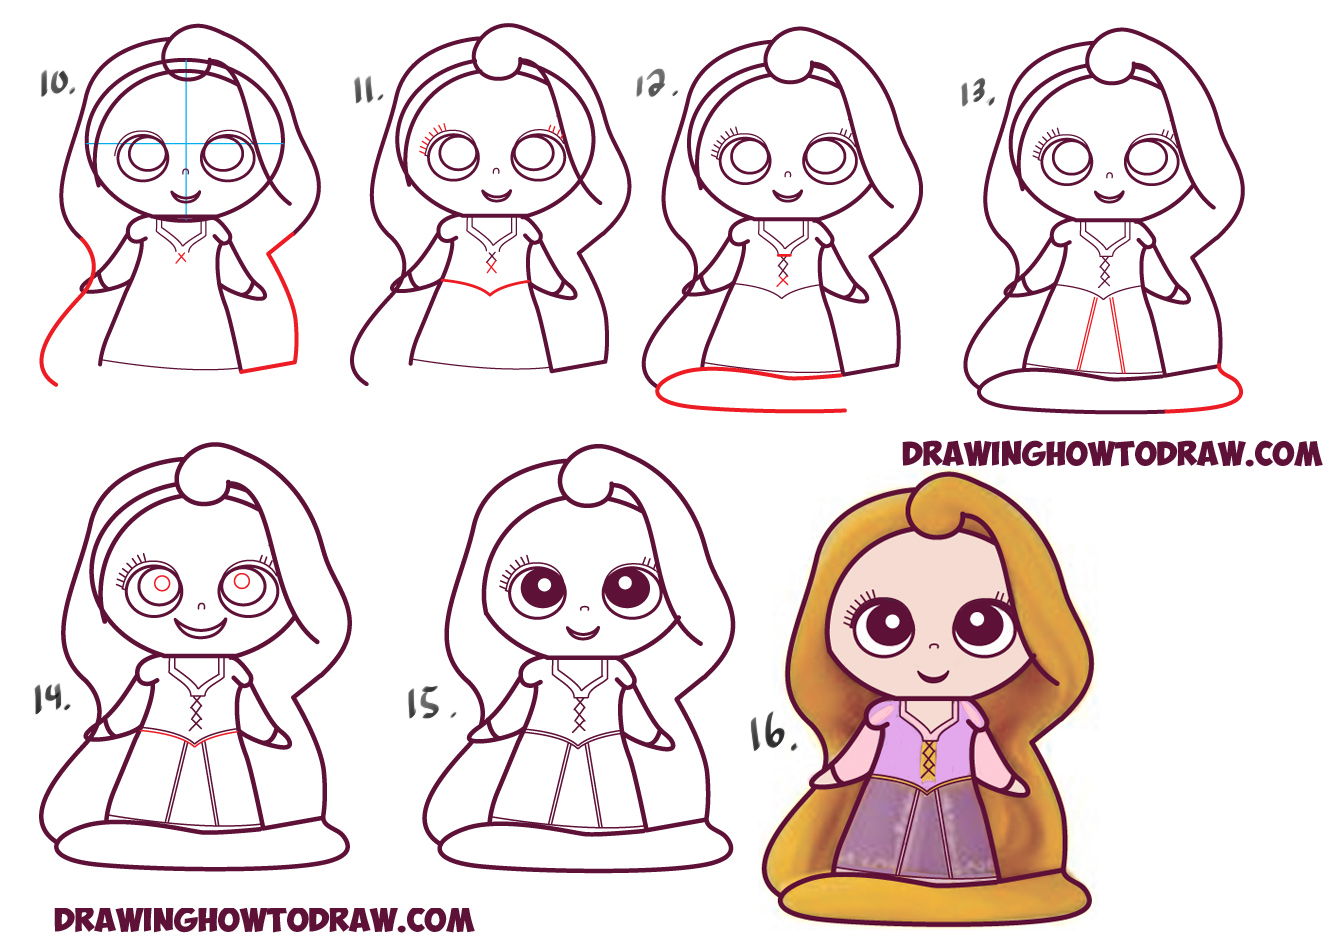 ... to Draw Kawaii Chibi Rapunzel from Disney's Tangled in Easy Steps